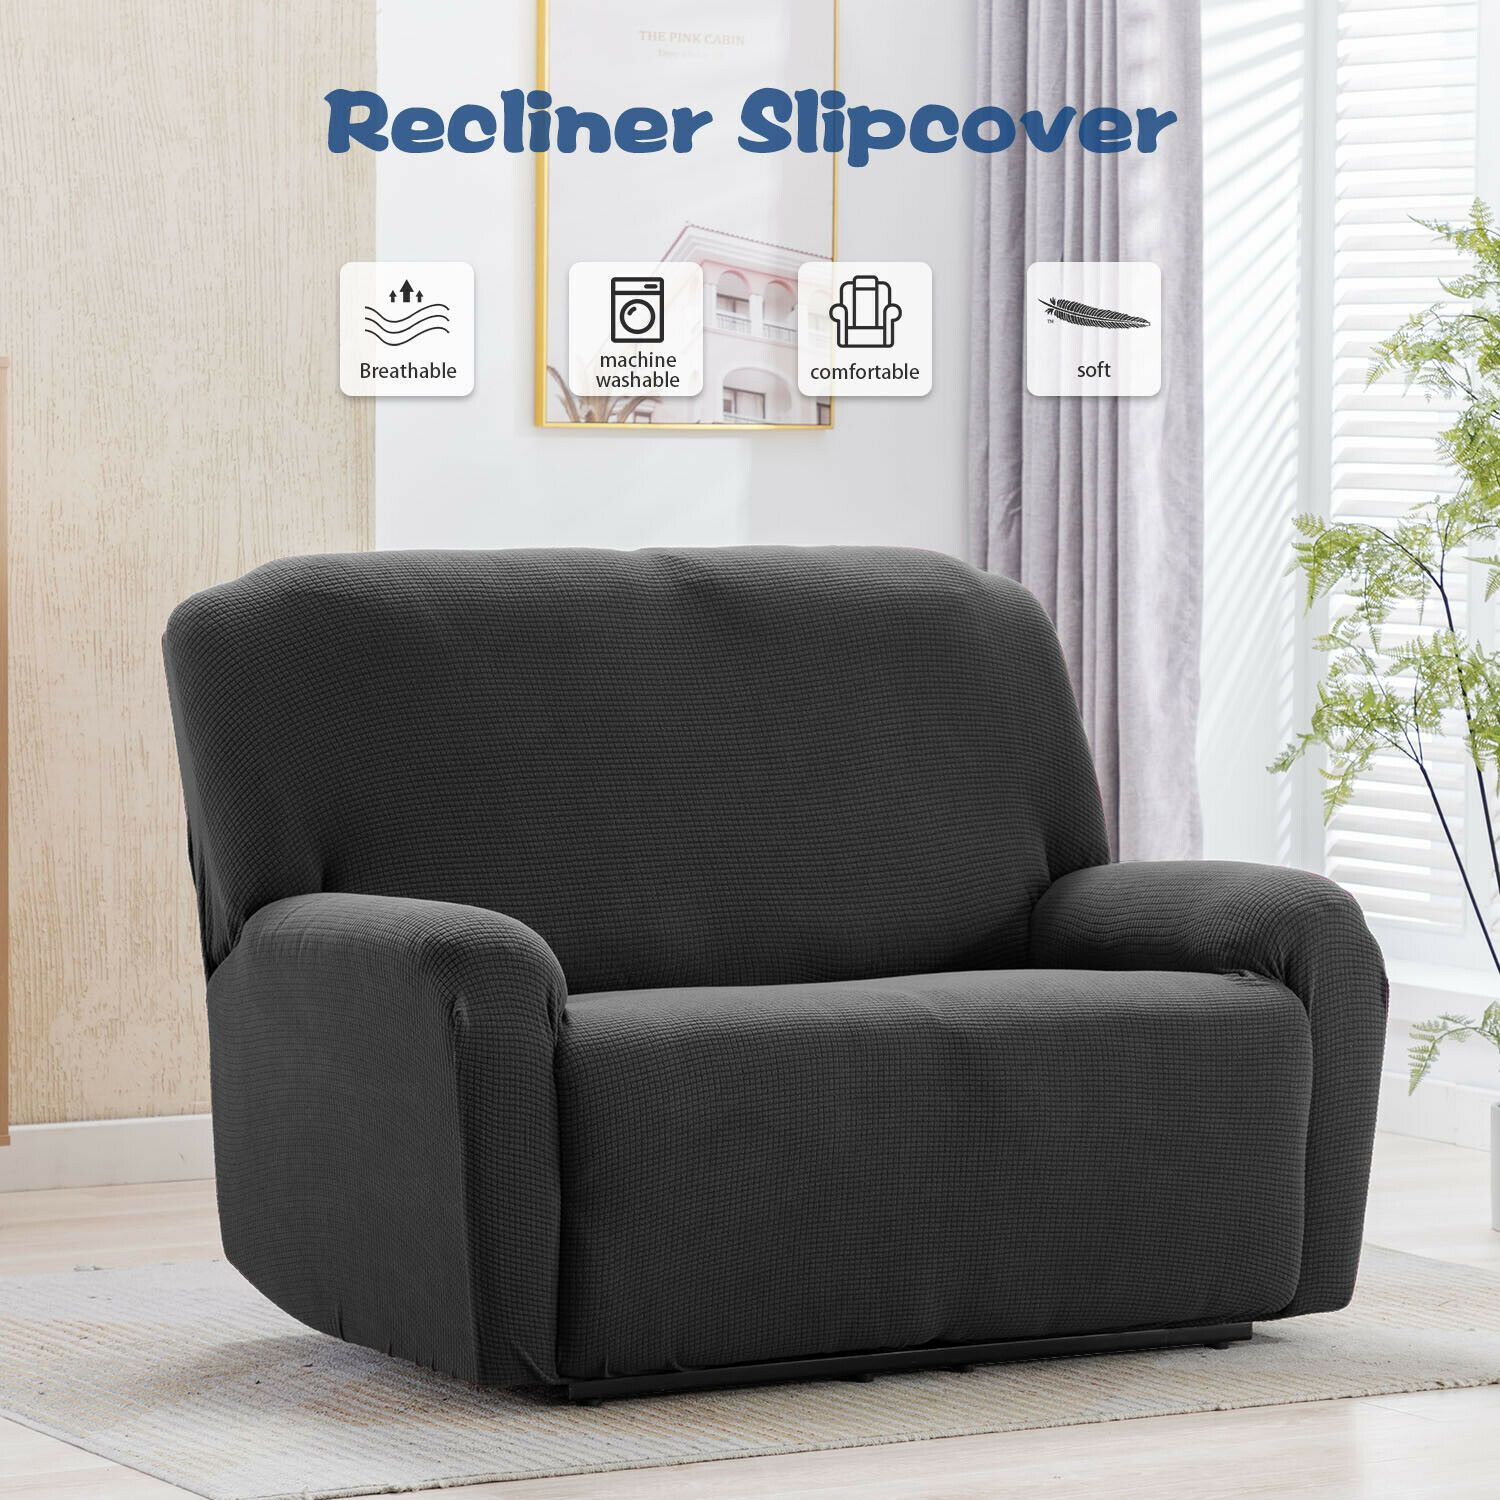 Recliner Chair Sofa Slipcover Stretch Fit Loveseat Furniture Protector Cover Sofa Slipcover Ide Couch Covers Slipcovers Fabric Sofa Cover Ektorp Sofa Cover